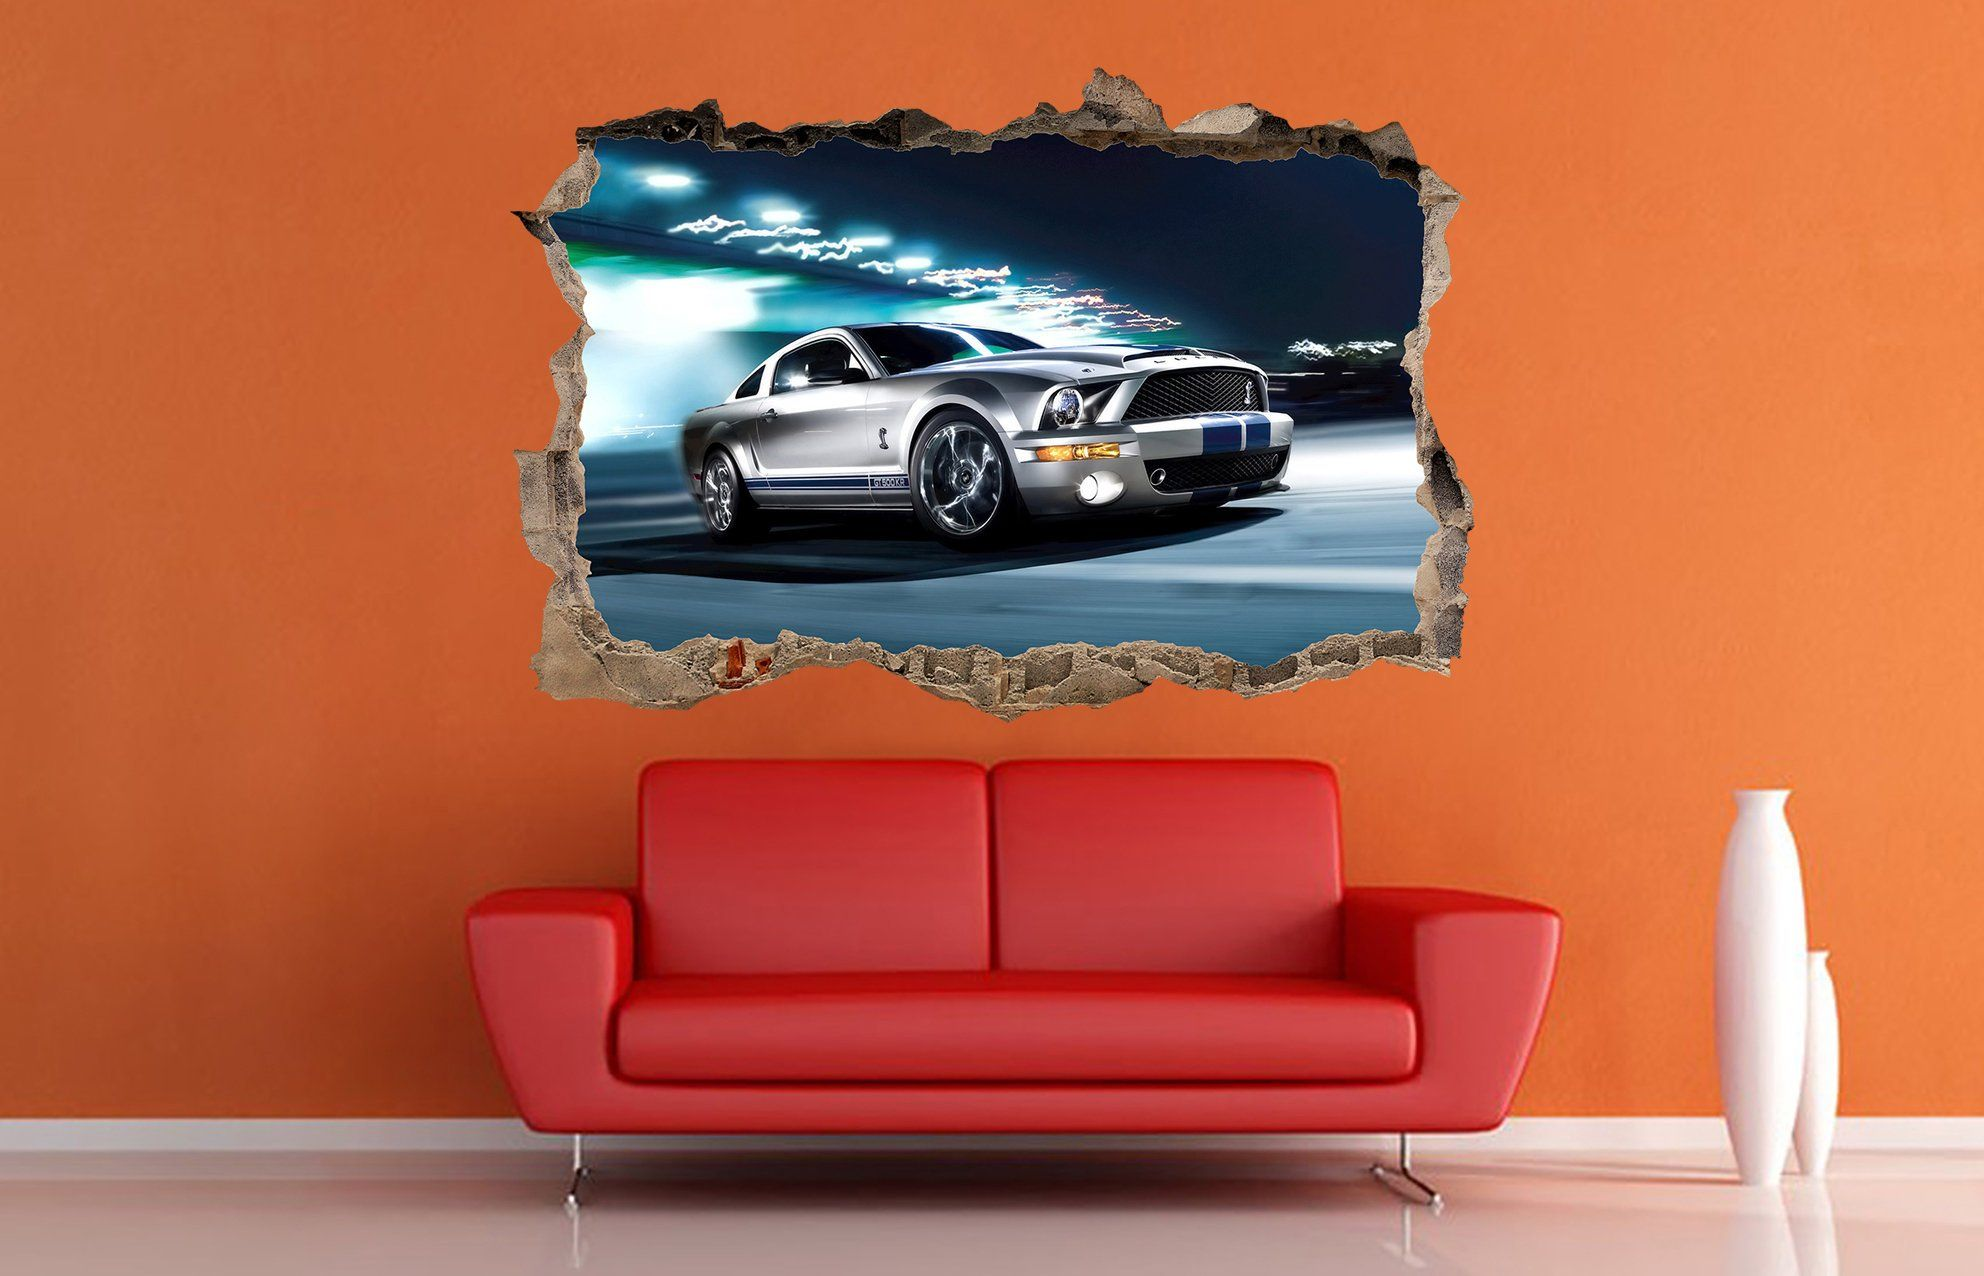 Ford shelby gt500 car decal car sticker car decor 3d wall crack decal ford print vinyl sticker ford decal sportcar supercar kids room decor by artideadecal